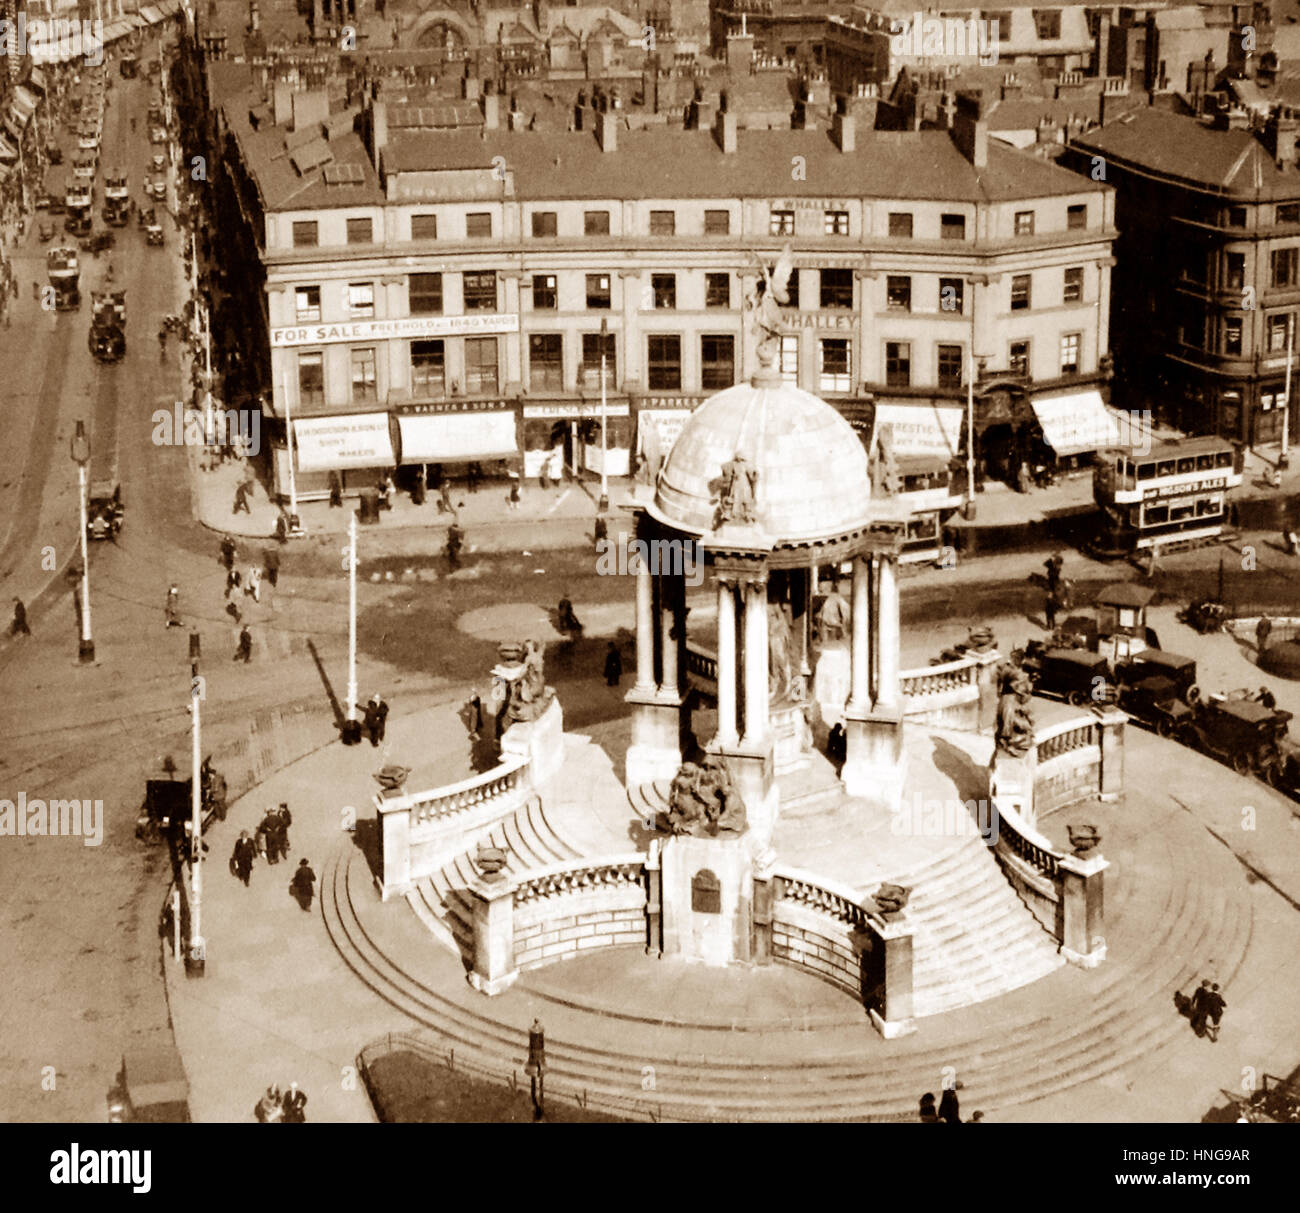 St. George's Circus, Lord Street, Liverpool - probably 1920s - Stock Image